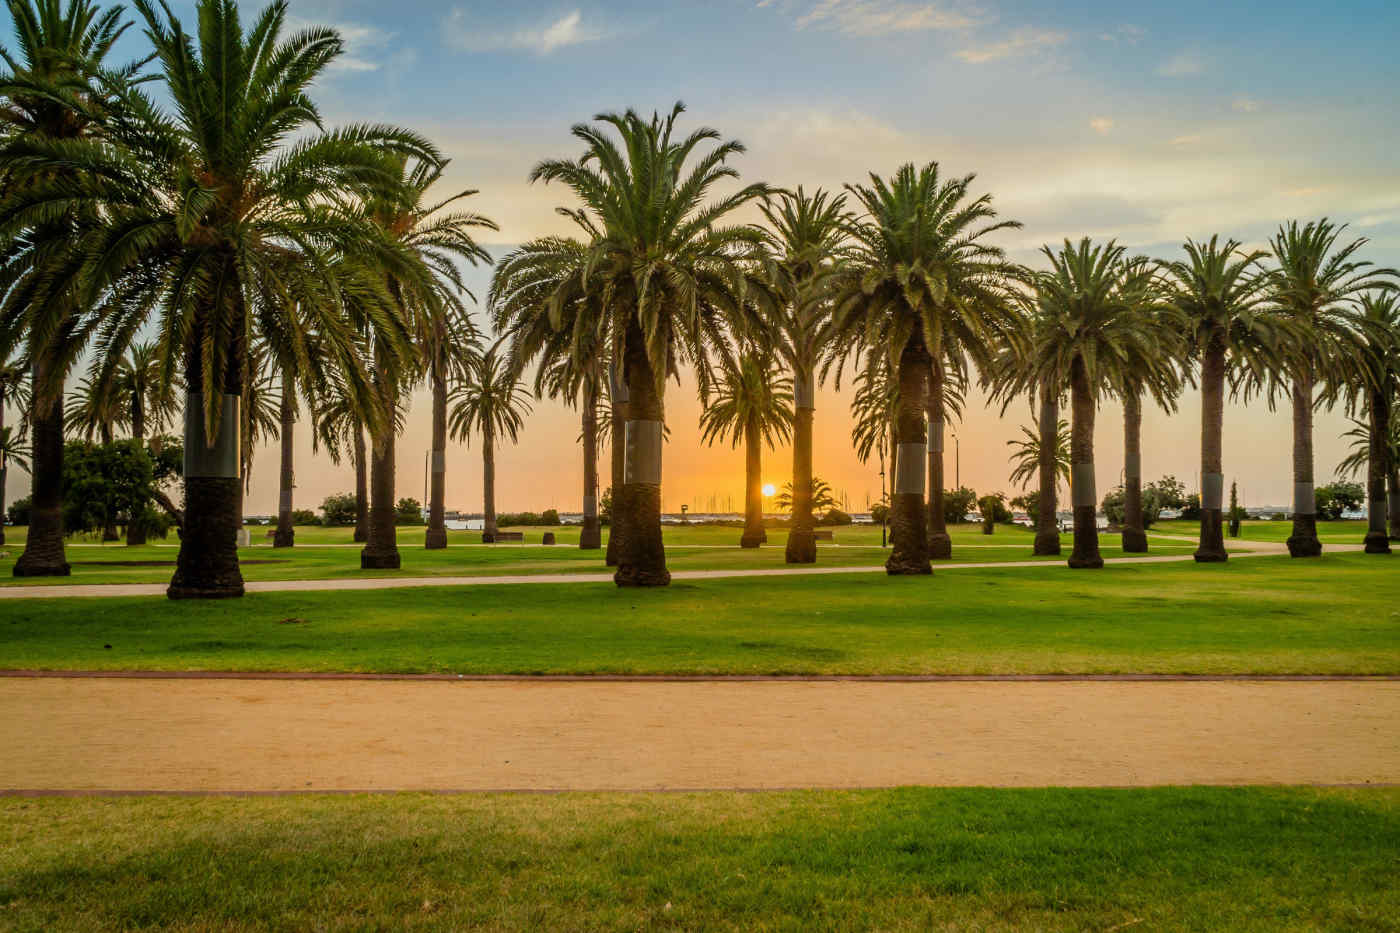 St Kilda Beach sunset • Melbourne